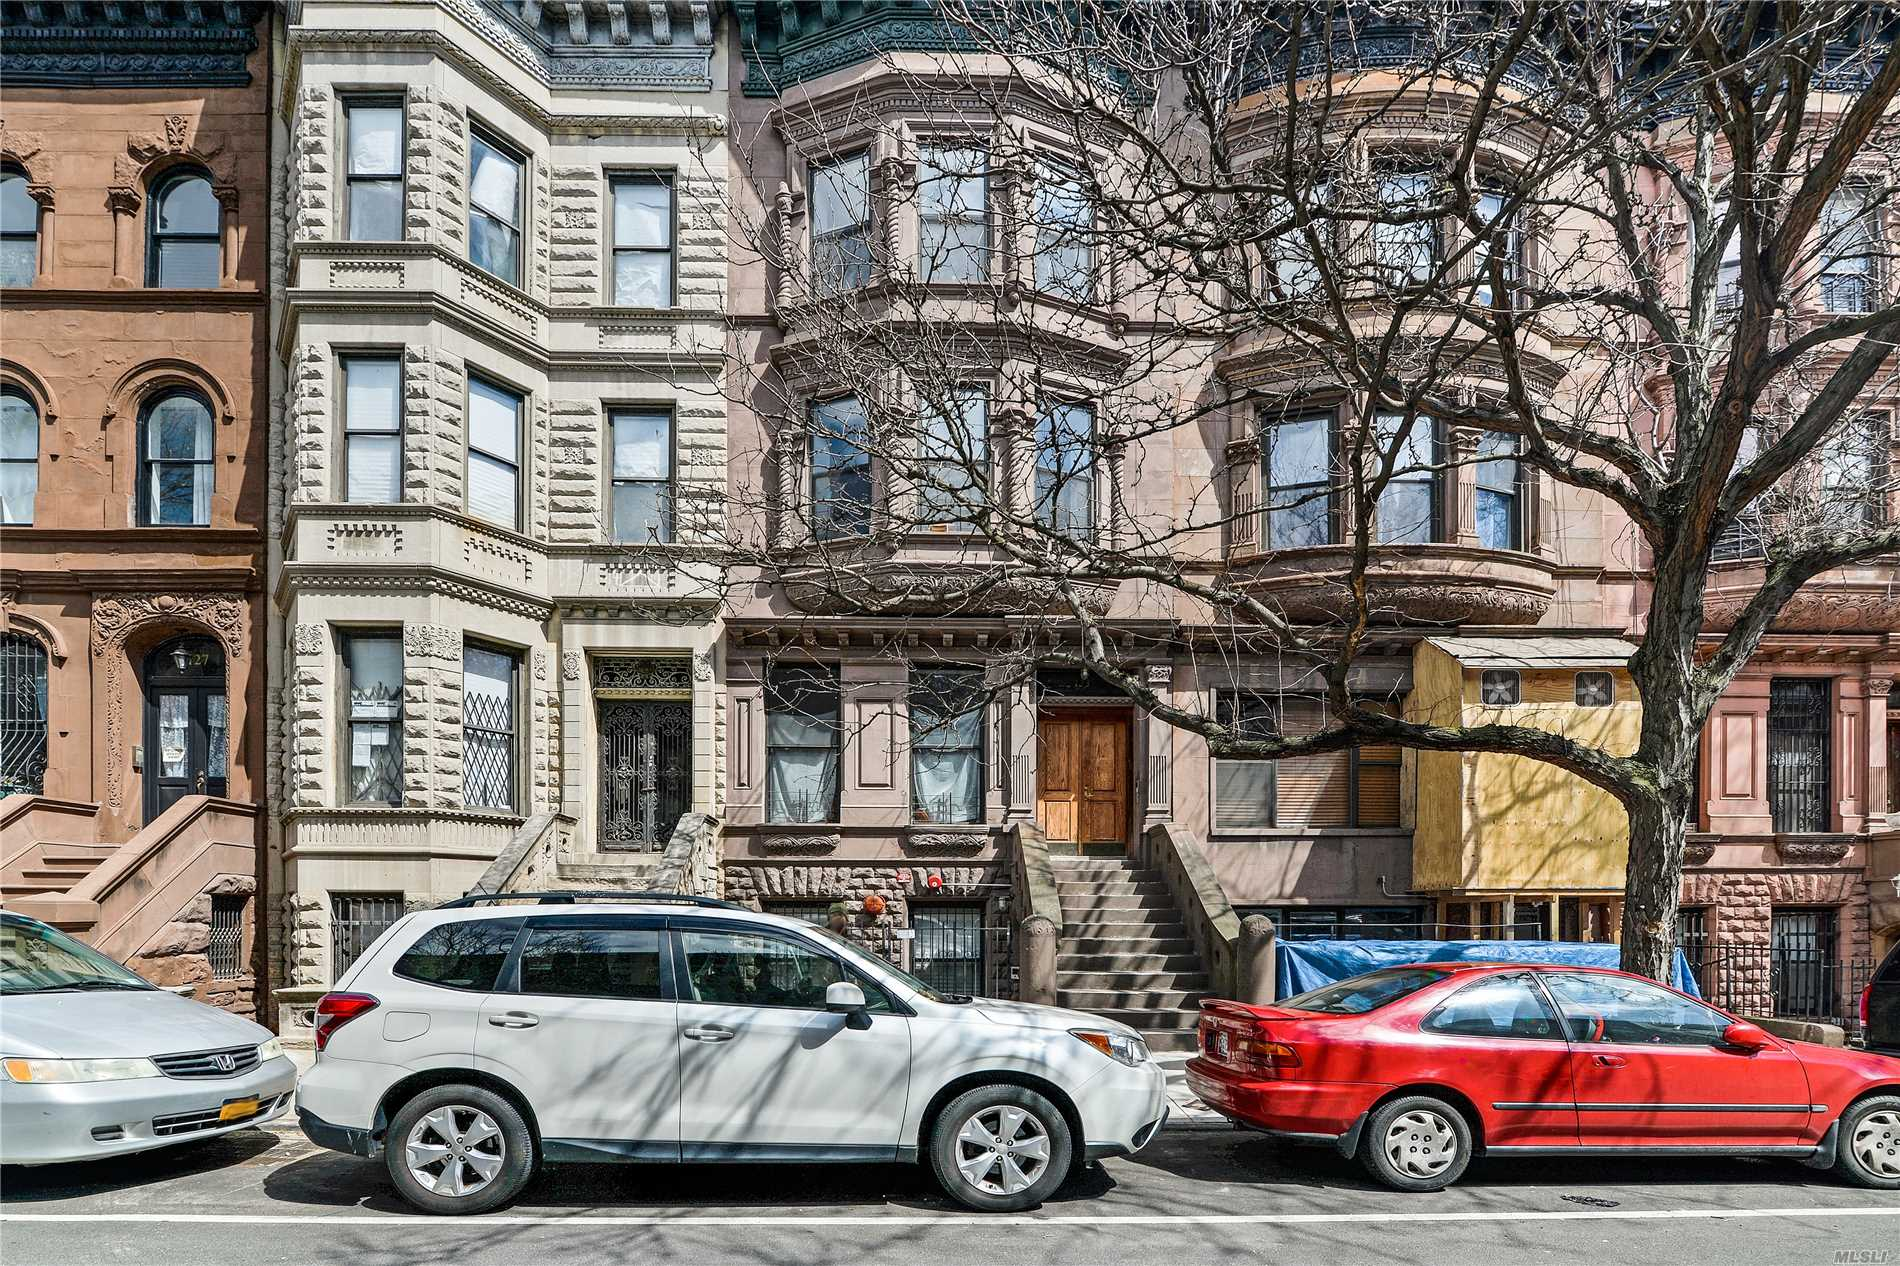 This Outstanding Landmarked 4-Family Brownstone Is Nestled In The Perhaps The Most Desirable Section Of Harlem (Mt. Morris Park Historic District). This Is A Unique Gem That You Or Your Friends Will Be Proud To Own! One Of The Larger Brownstones In The Area, This Home Is 20-Feet Wide And Has An Extension At The Rear. It Has Four Two-Bedroom Units, One On Each Floor (Garden Level, Parlor Level, And Two Upper Levels); Plus A Full Cellar. Each Unit Has Independent Utilities.